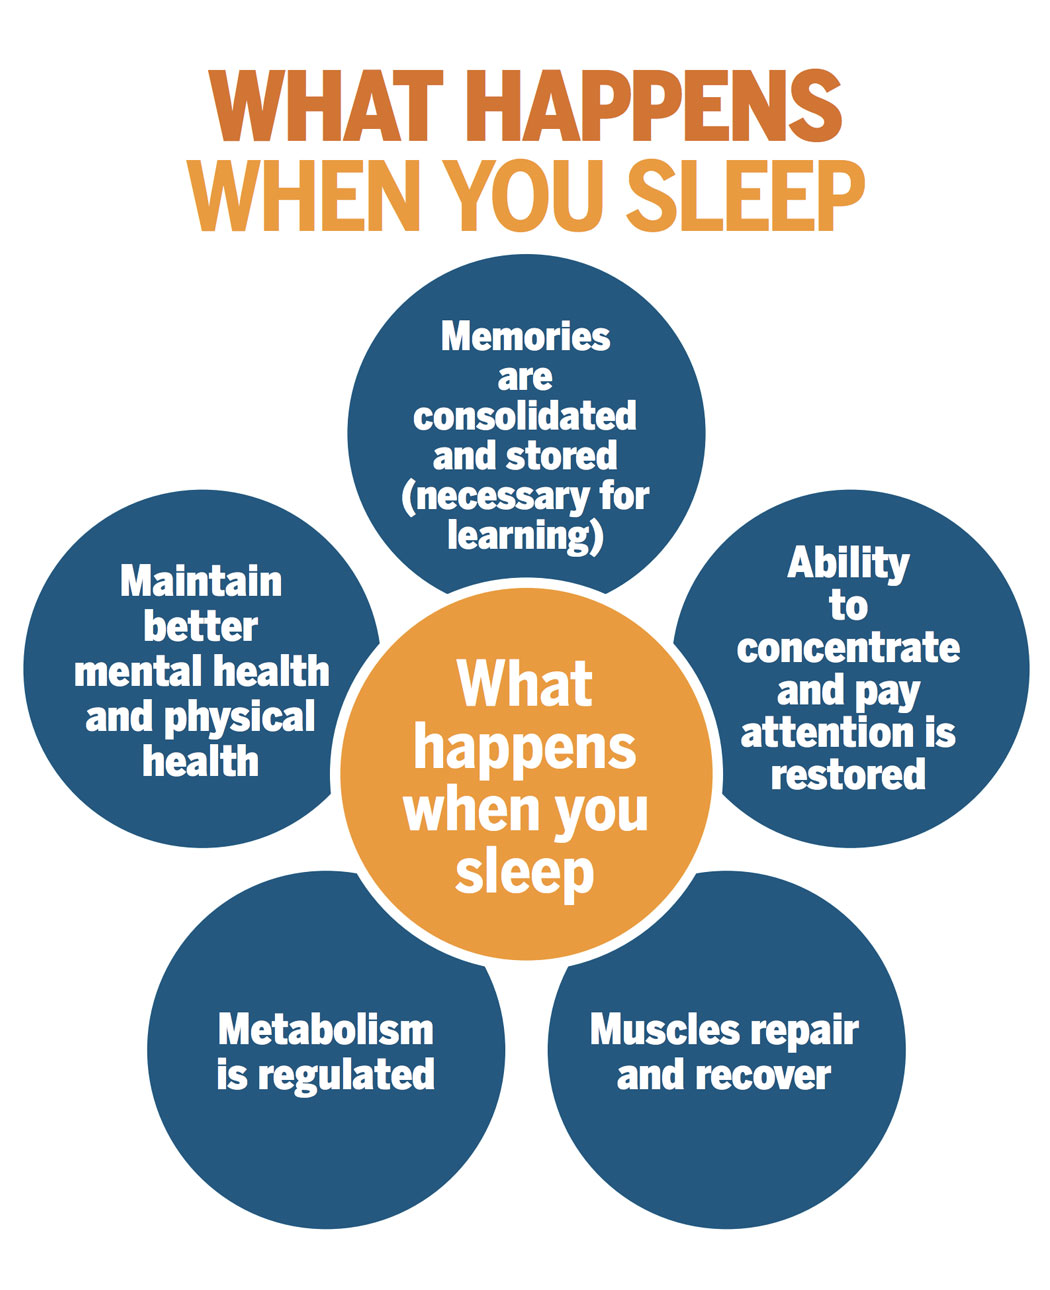 Working in Shifts? How much Does it Impact your Overall Sleep and Health?